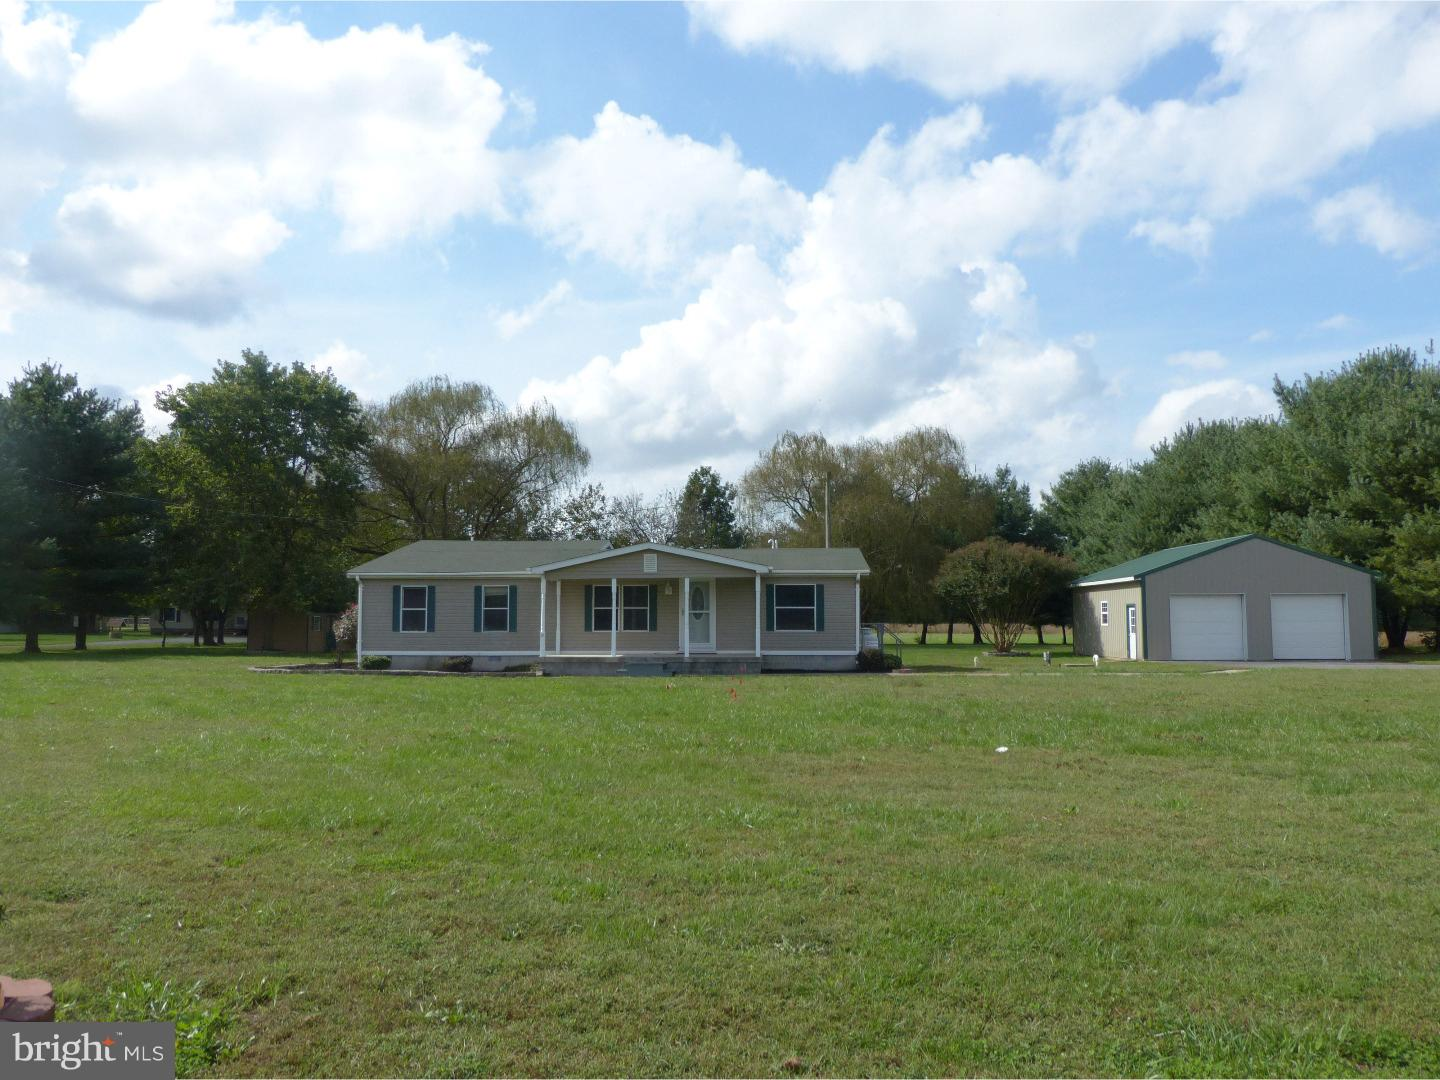 Single Family Home for Sale at 20230 S DUPONT HWY Harrington, Delaware 19952 United States